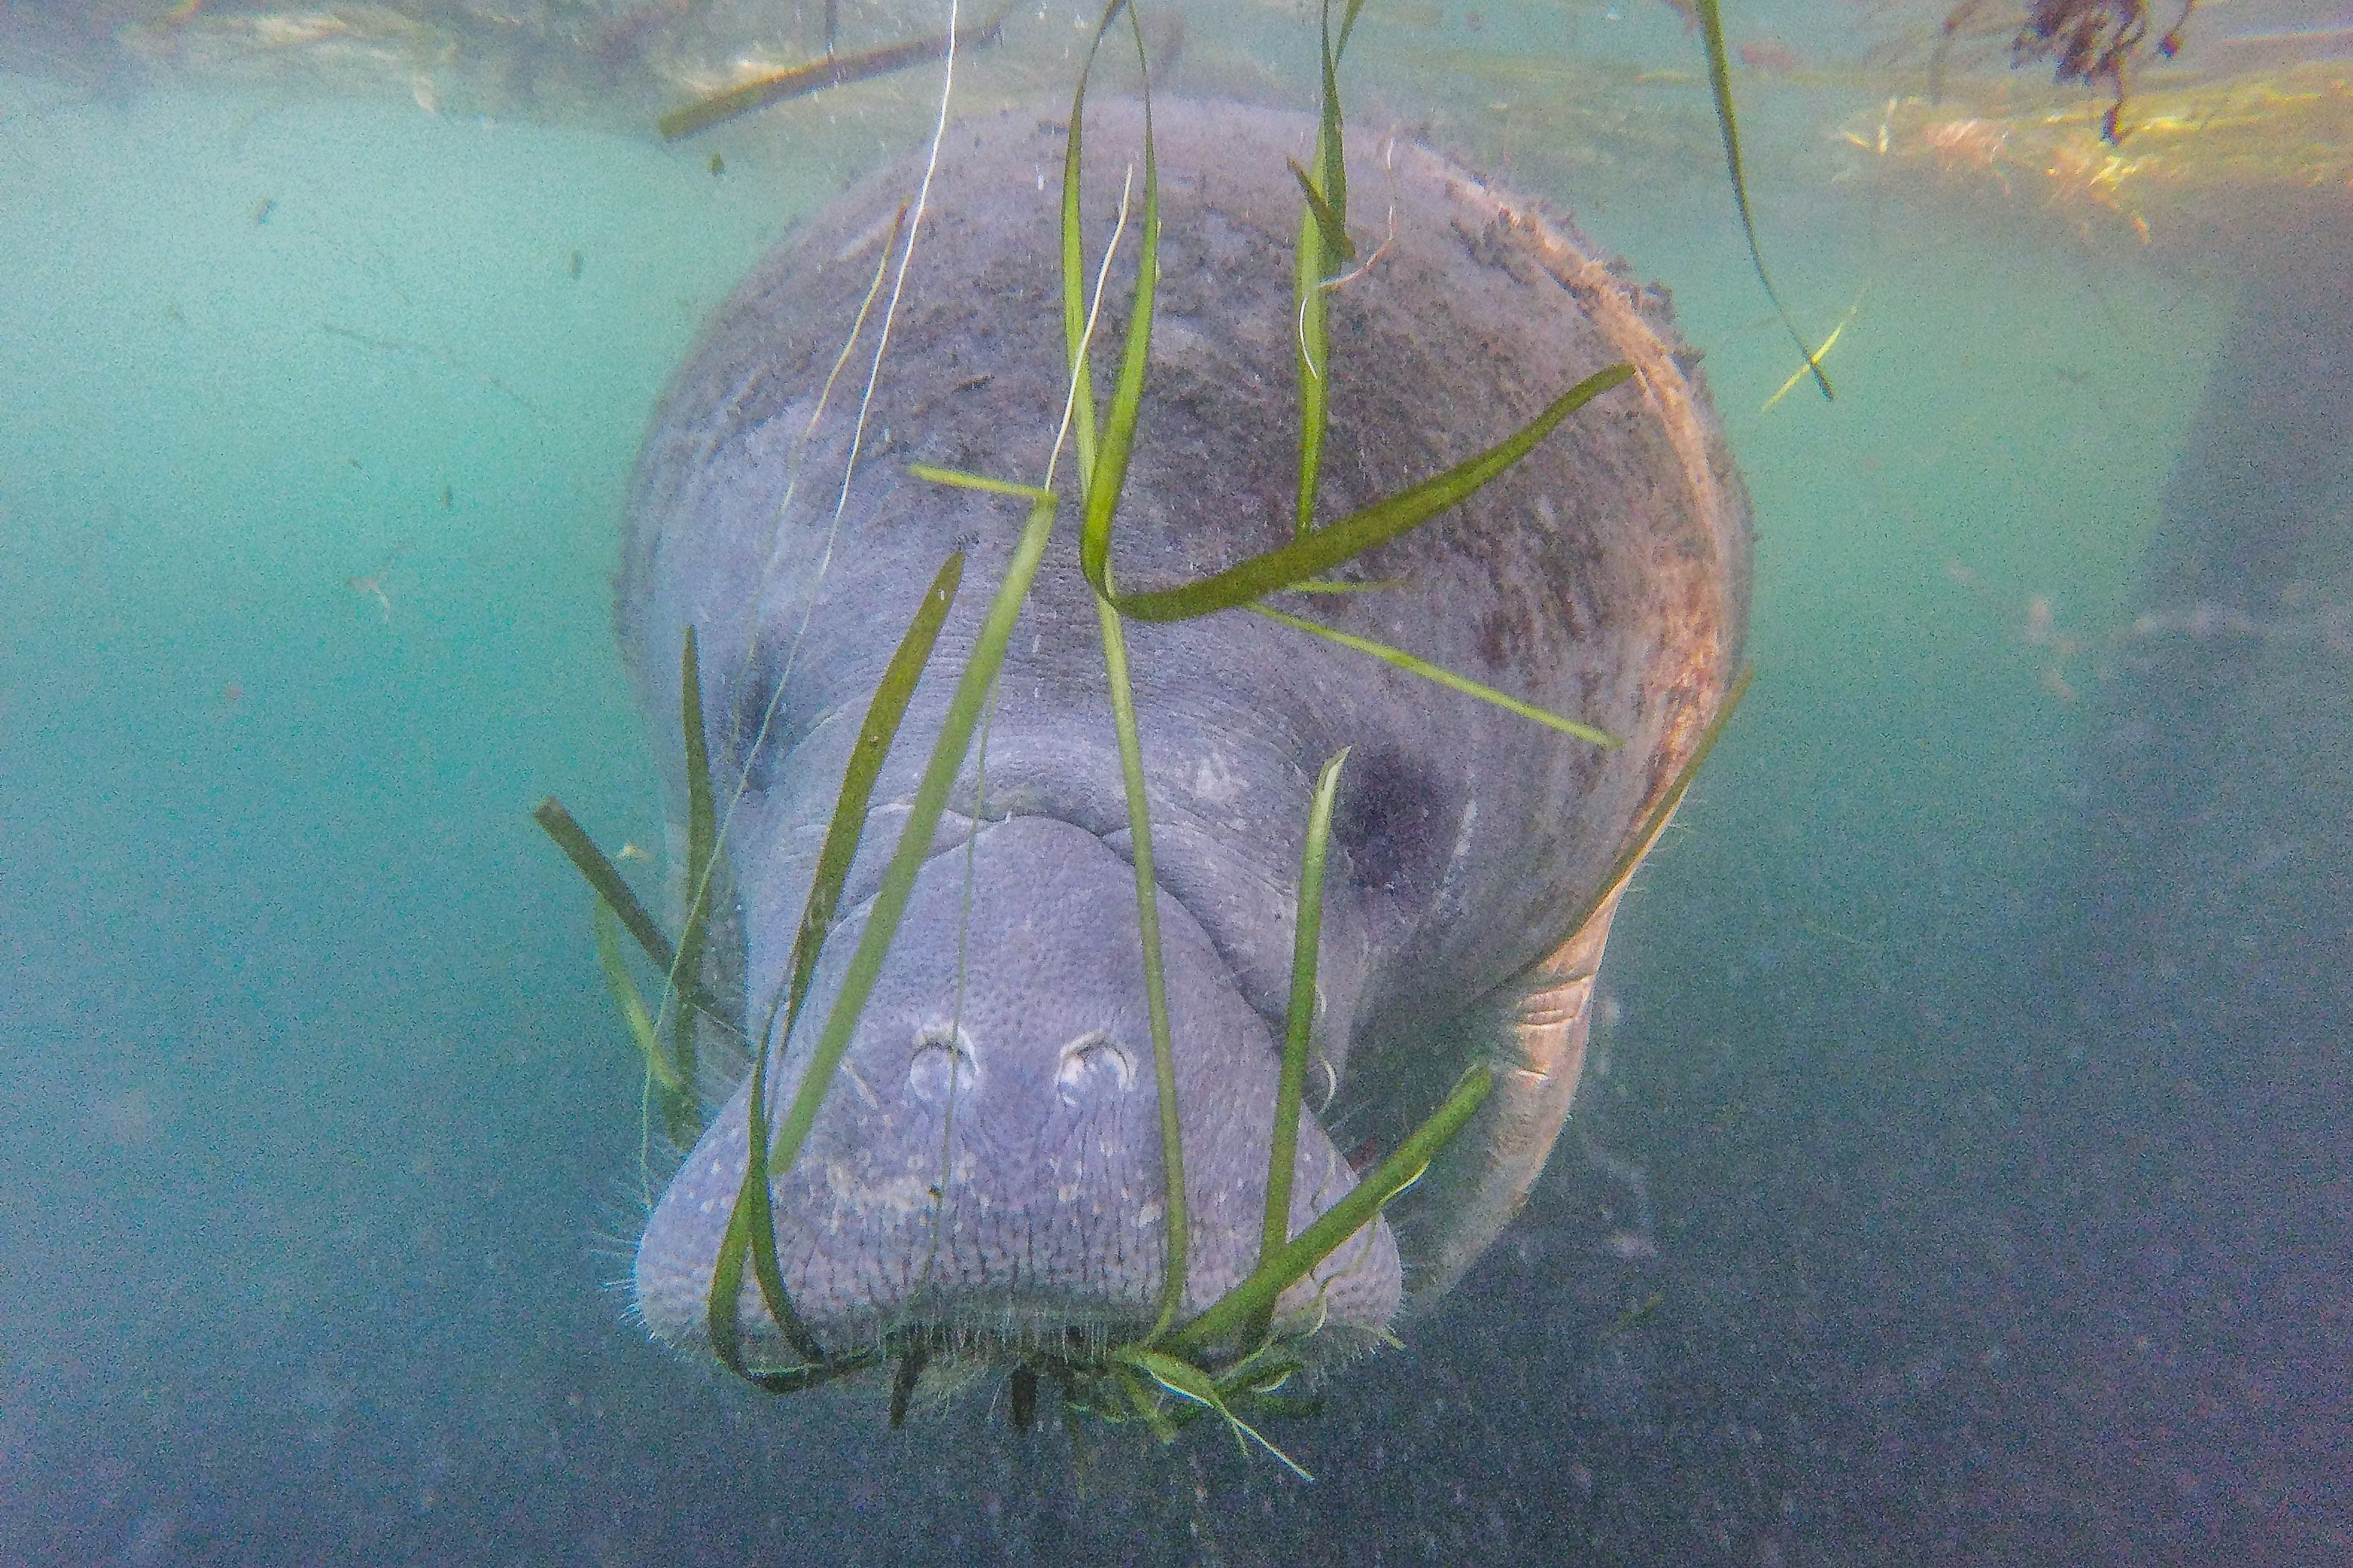 A manatee swims beside a tour boat in the Crystal River Preserve State Park on Jan. 7, 2020, in Crystal River, Florida. Hundr